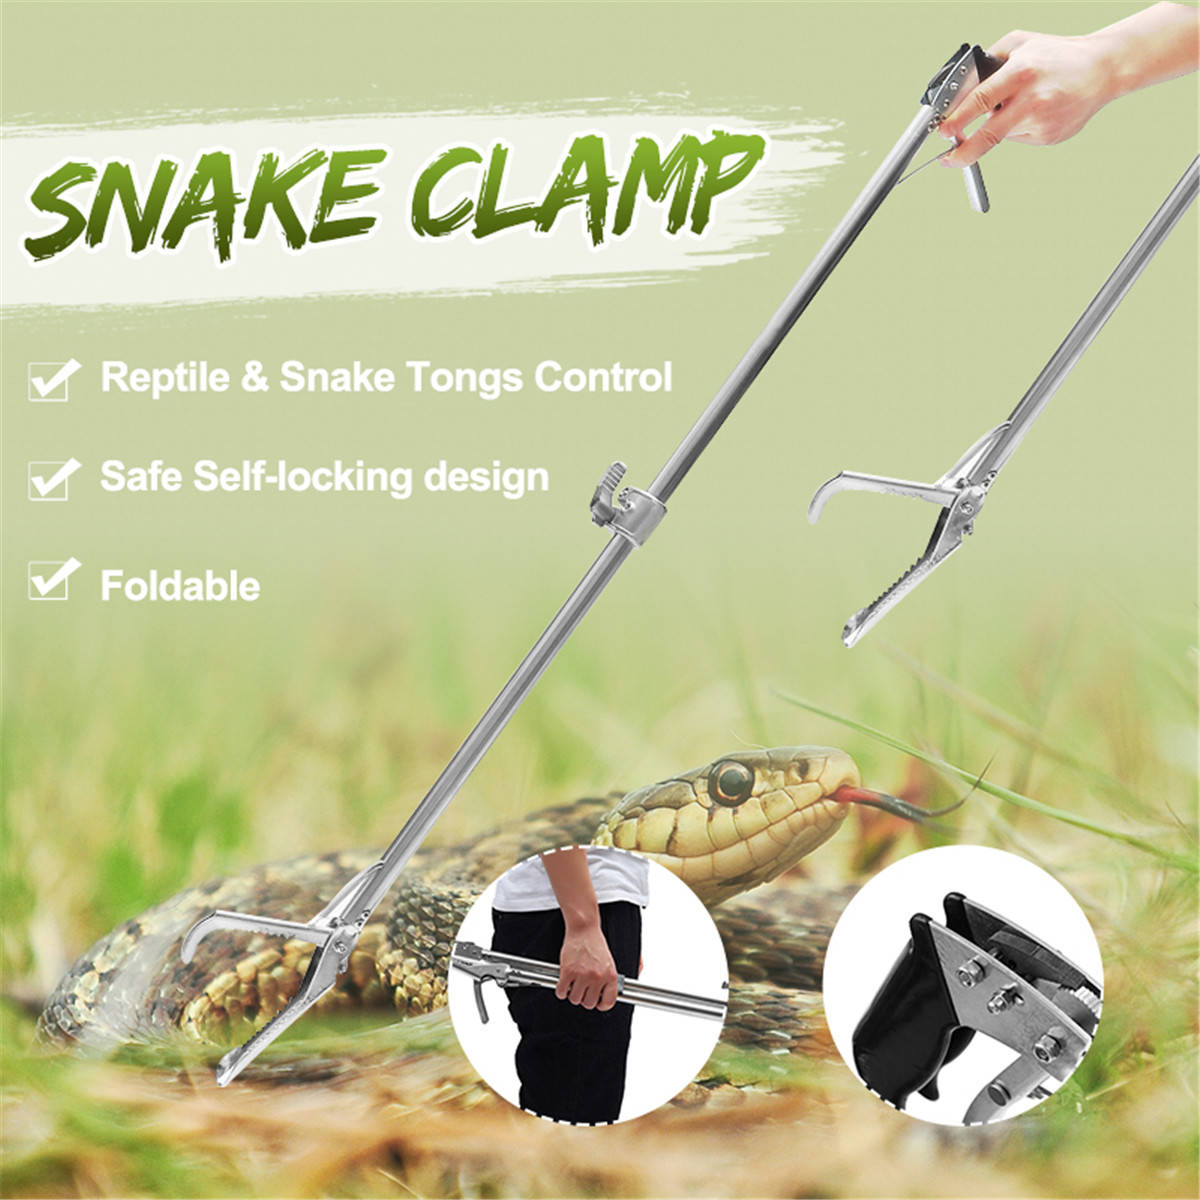 120/100/75CM Foldable Self Locking Reptile Snake Catcher Tongs Stick Grabber Wide Jaw Tool Heavy Duty Pest Control Products